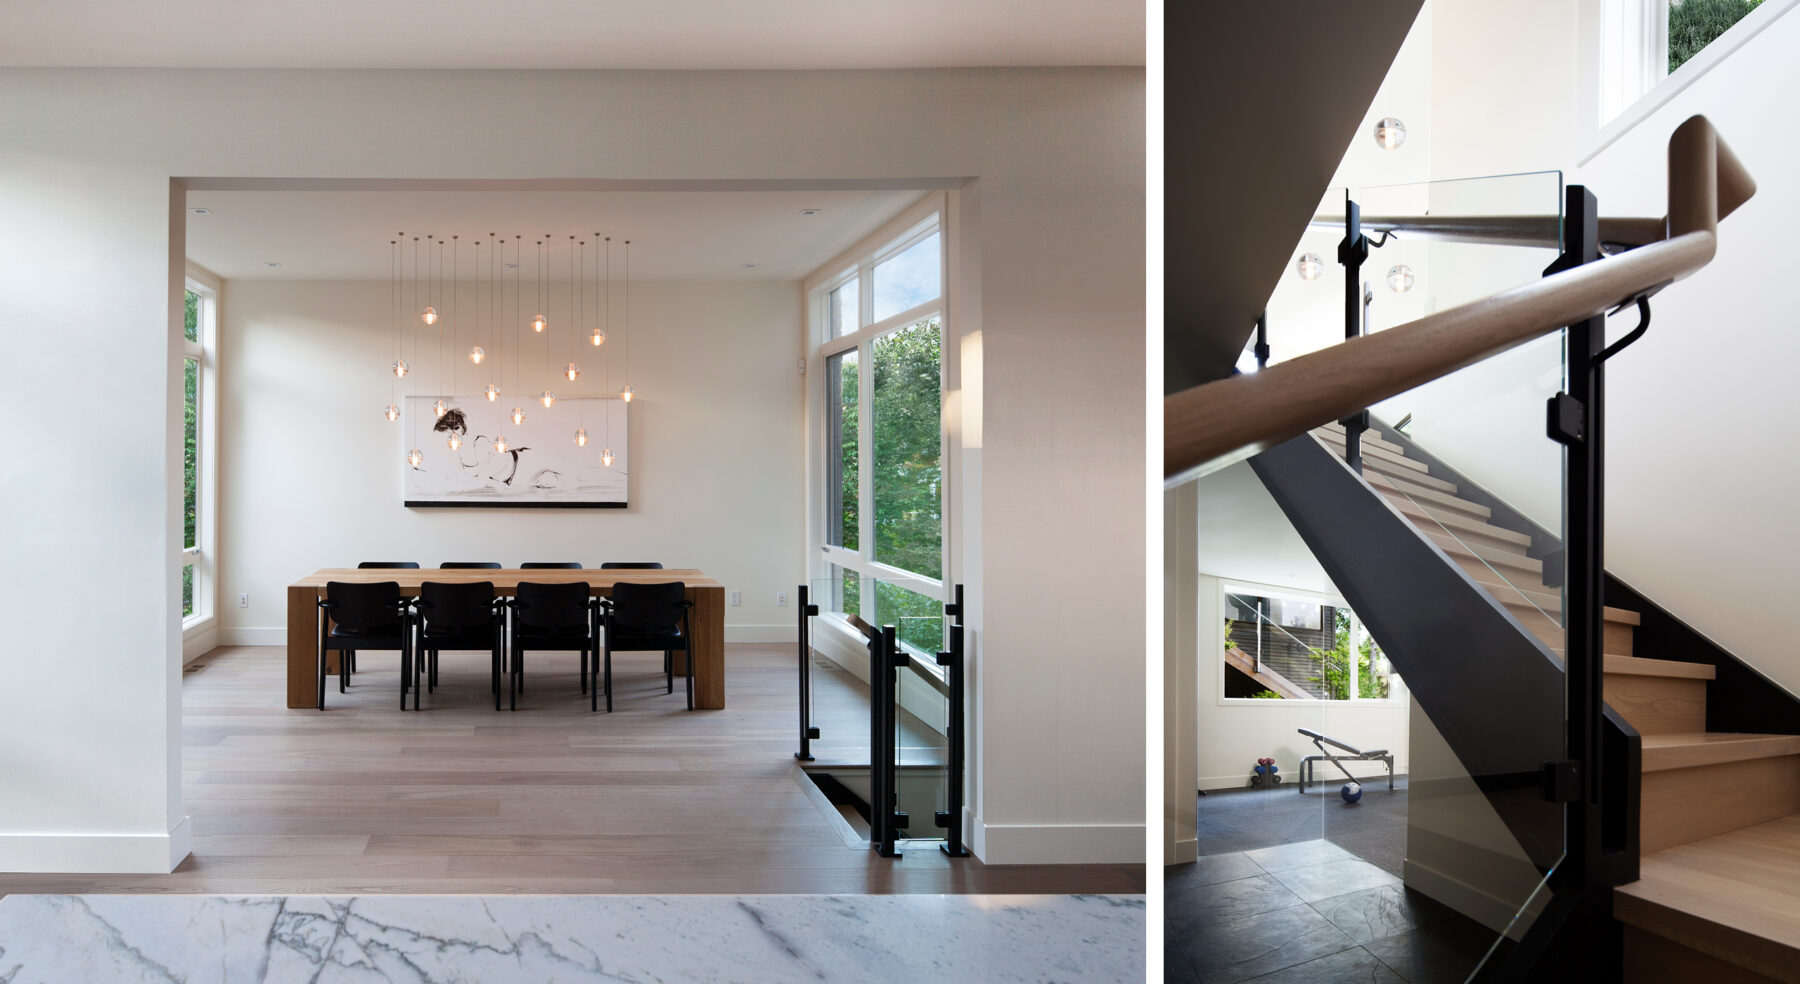 Split view of Westboro Home dining area and stair railing detail